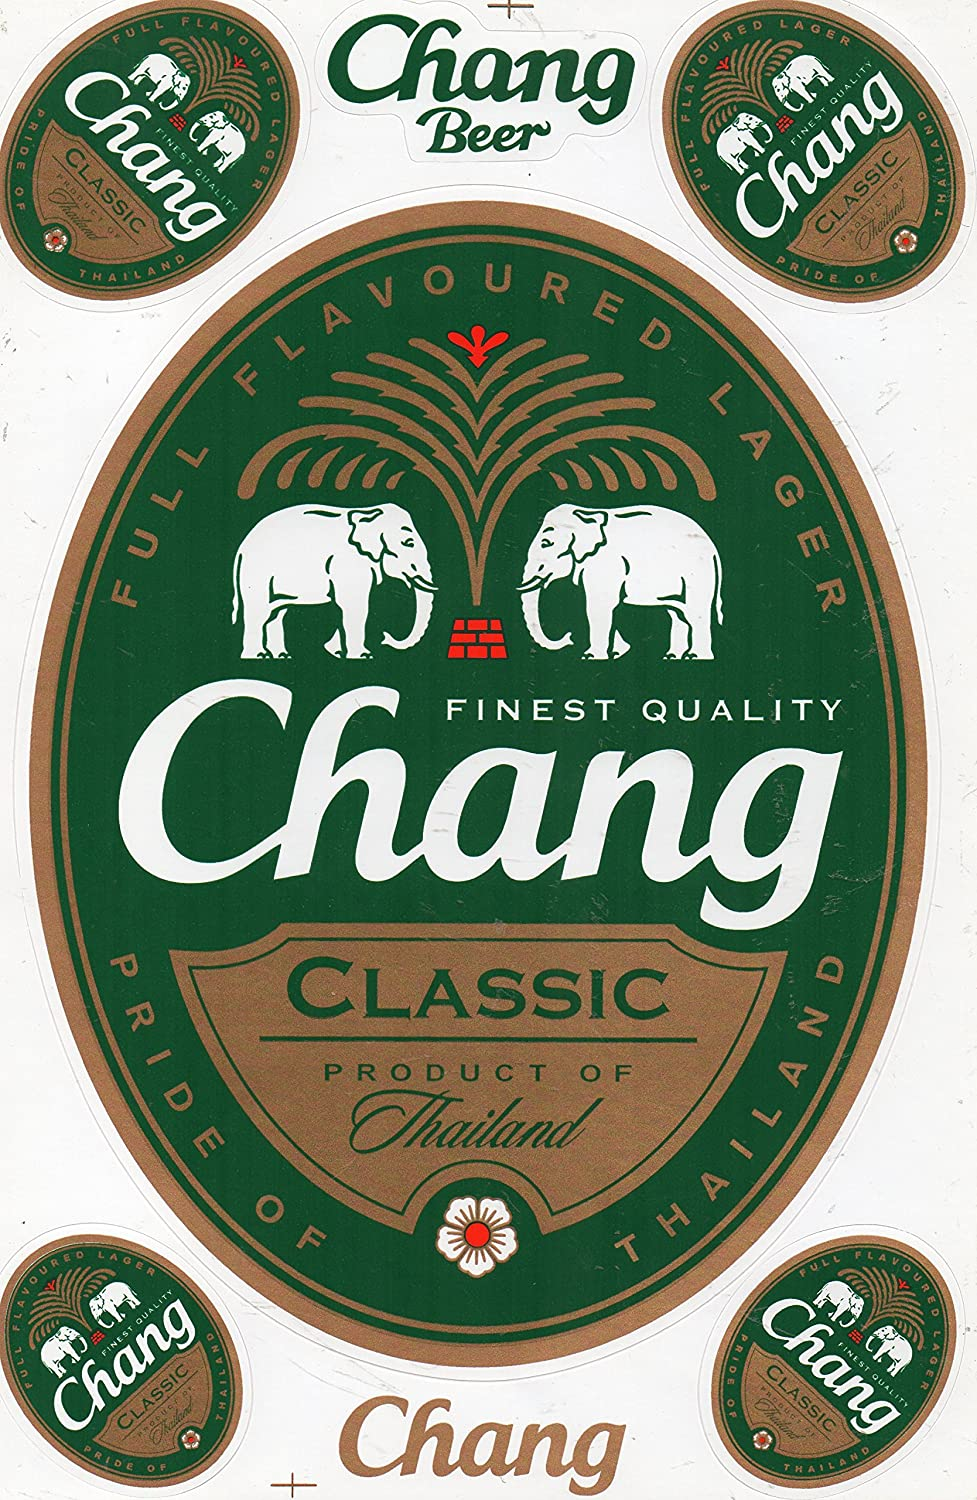 Chang Beer Decal Sticker Tuning Racing Sheet Size: 27 x 18 cm for Car or Motorbike by soljo A560-Beer